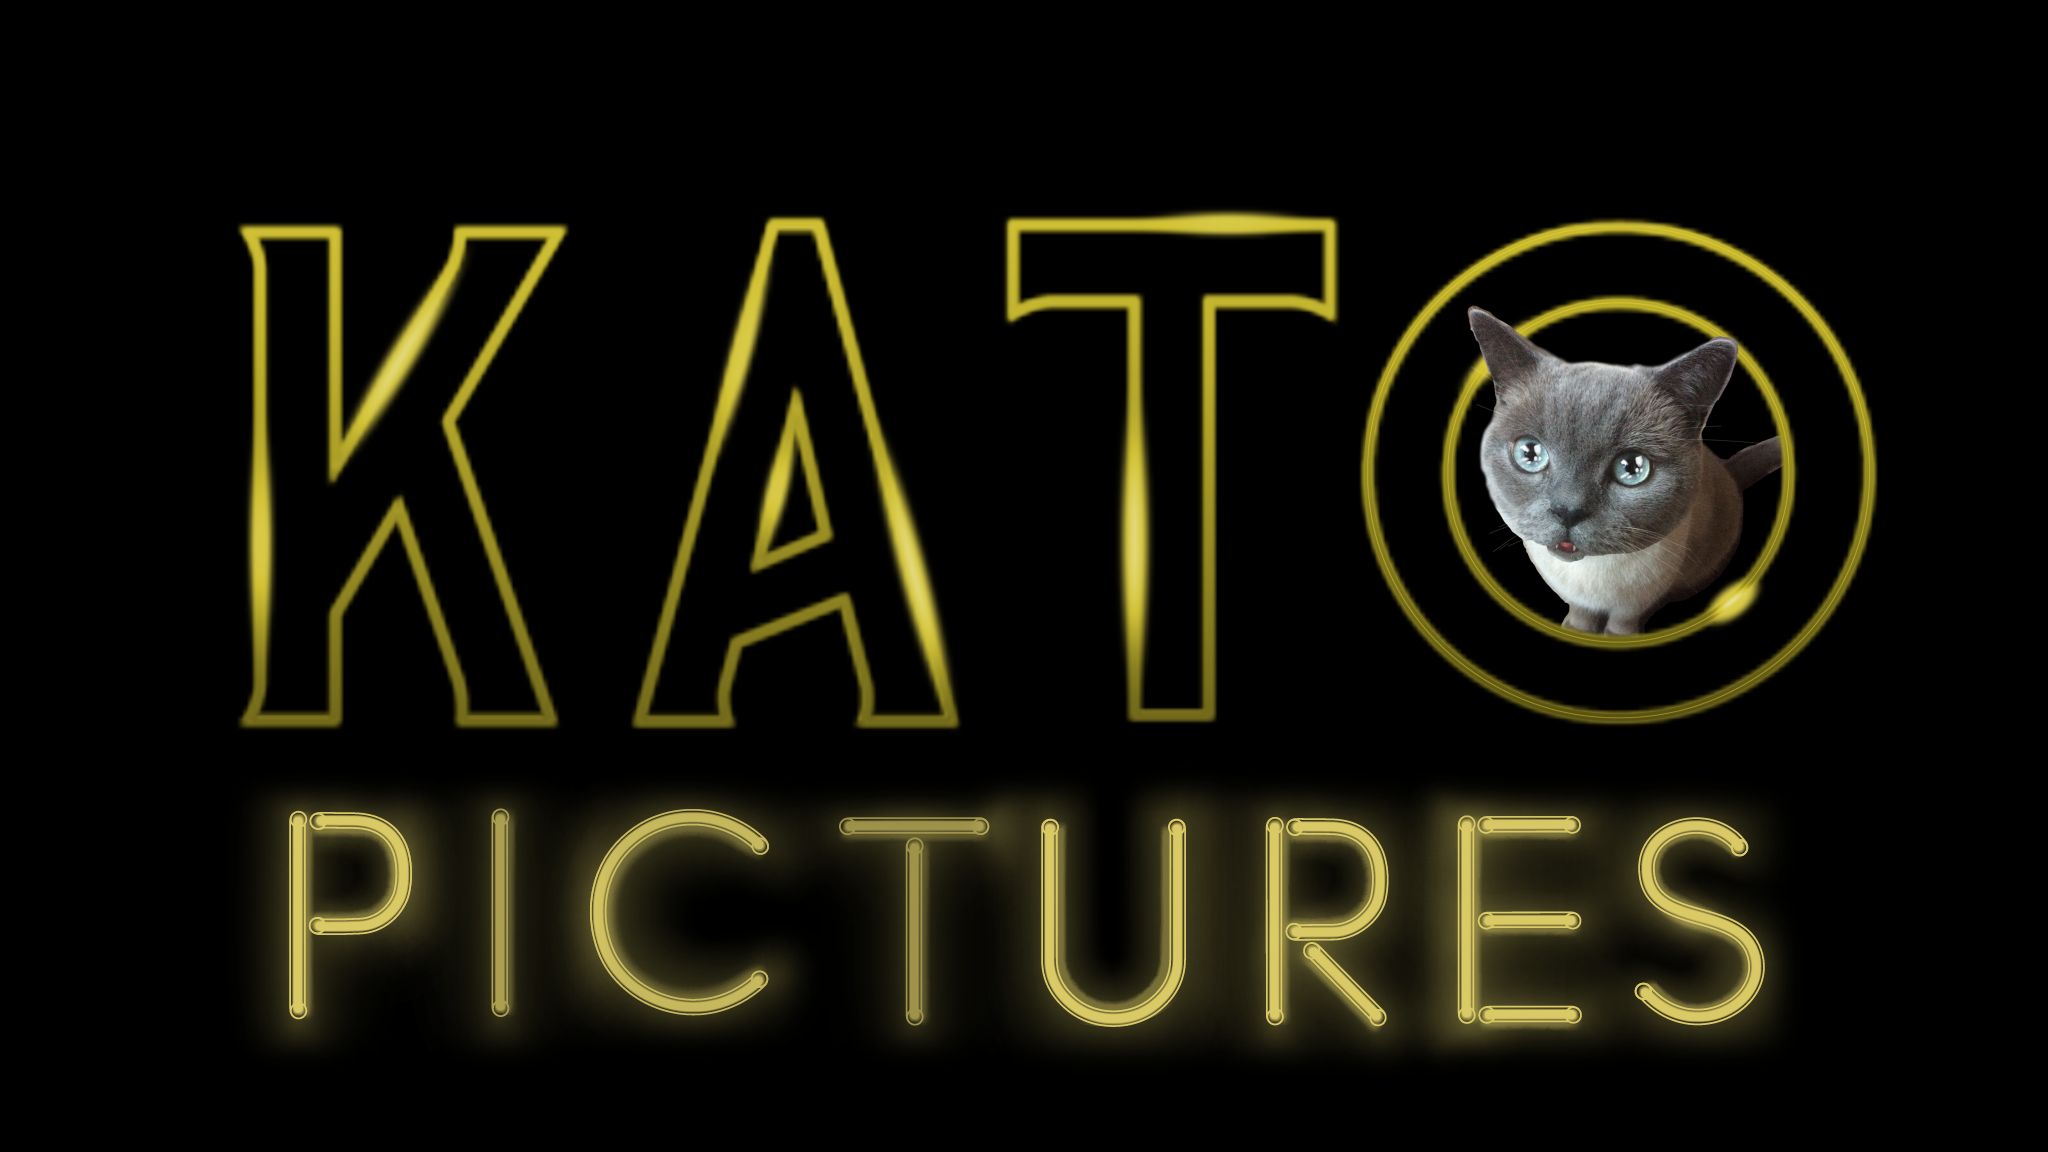 Kato_Pictures_16_9_Black.png